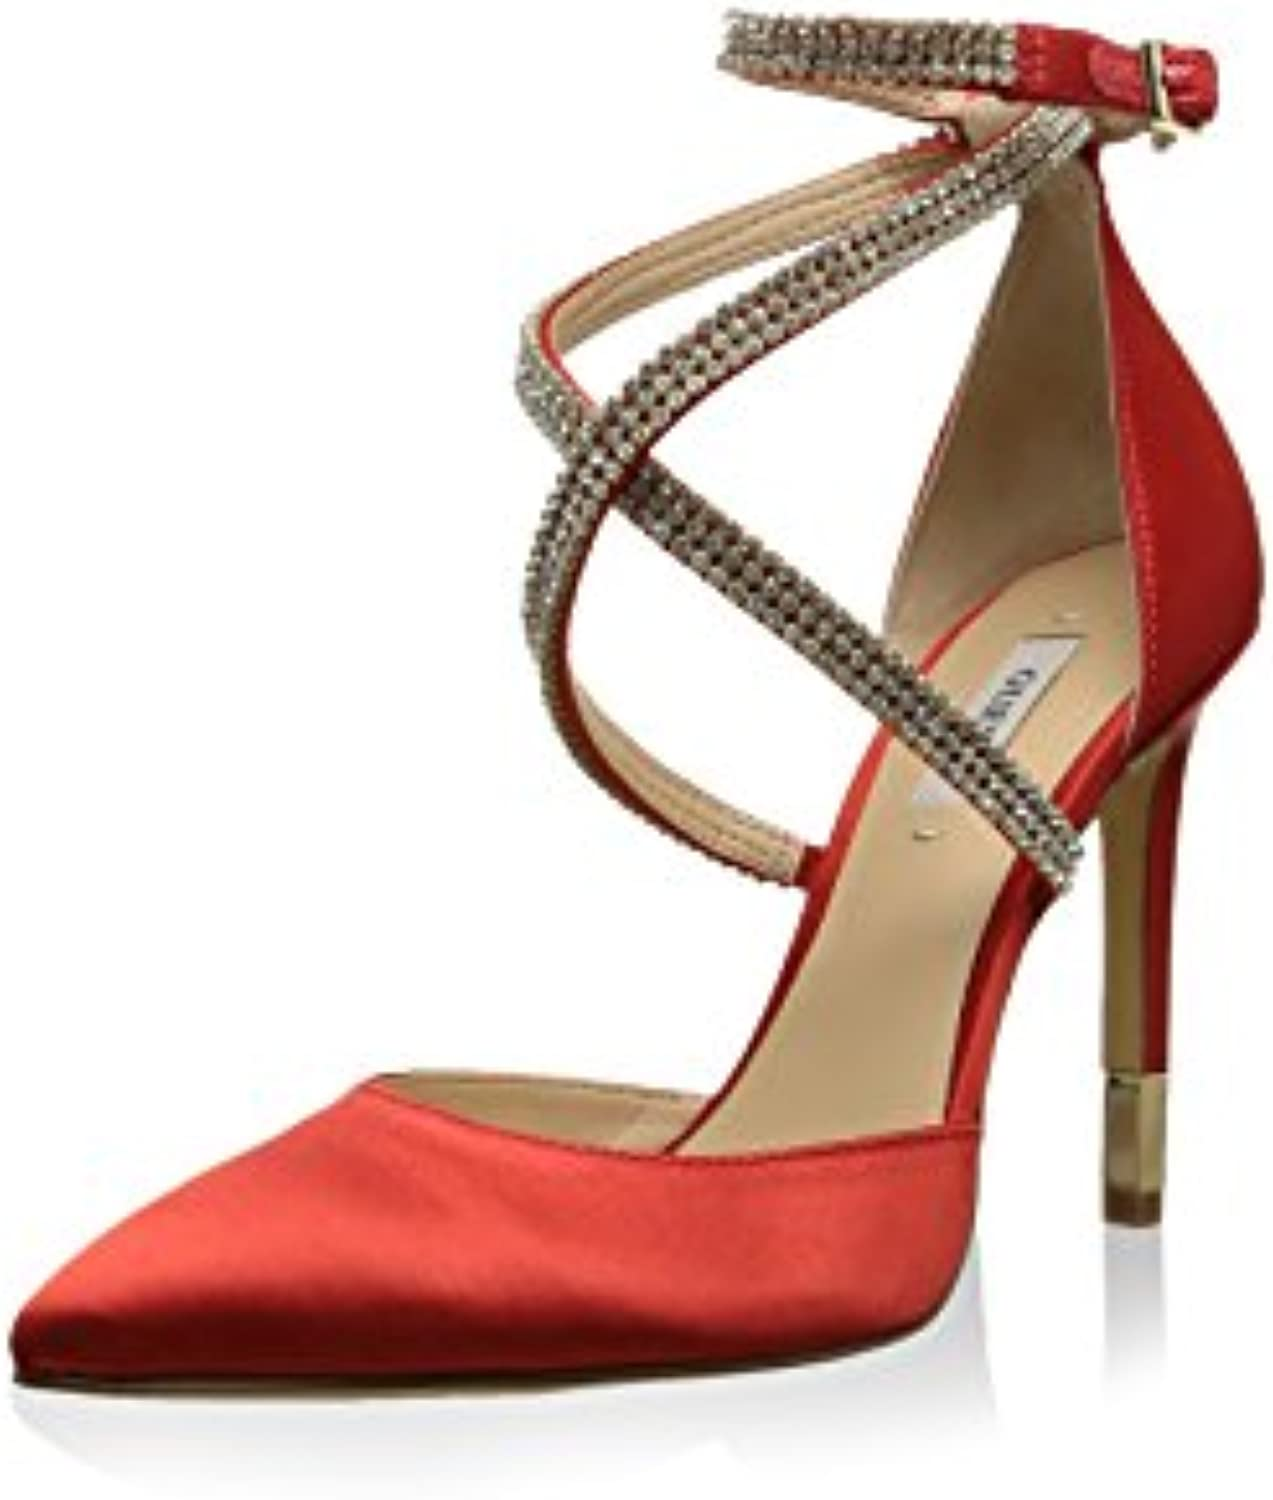 GUESS Damen Pumps Highheels Stilettos Riemchensandalen Rot